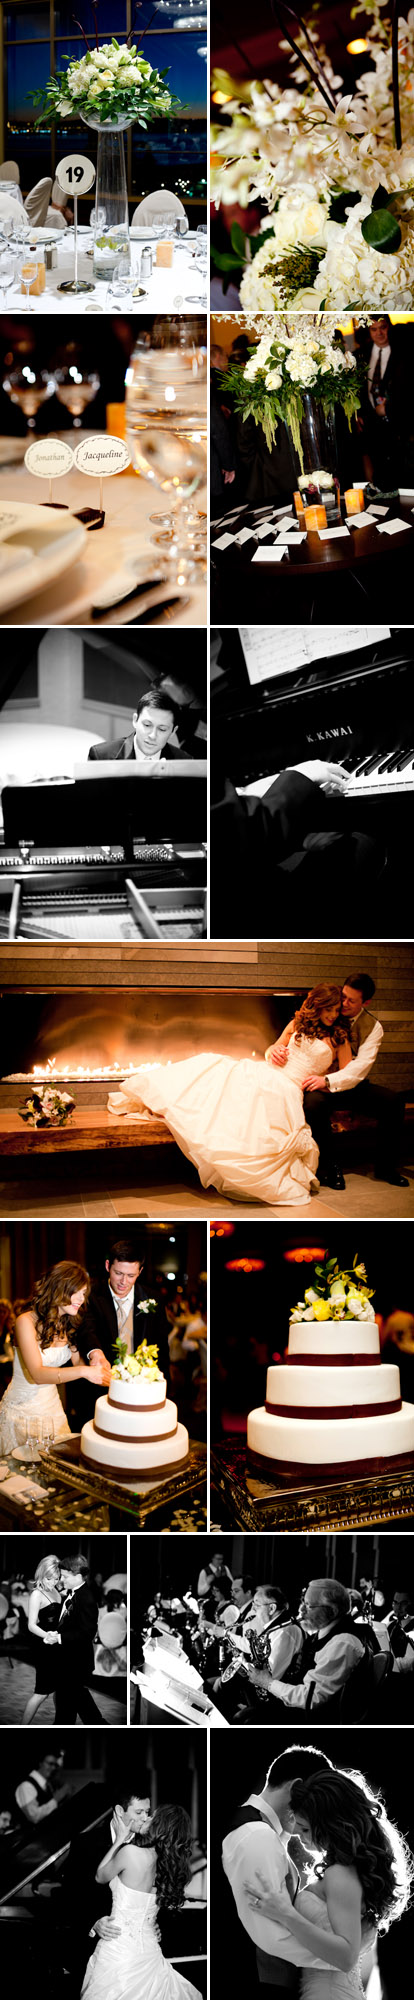 Modern Seattle wedding at the new Four Seasons Hotel, big band wedding reception, images by La Vie Photography